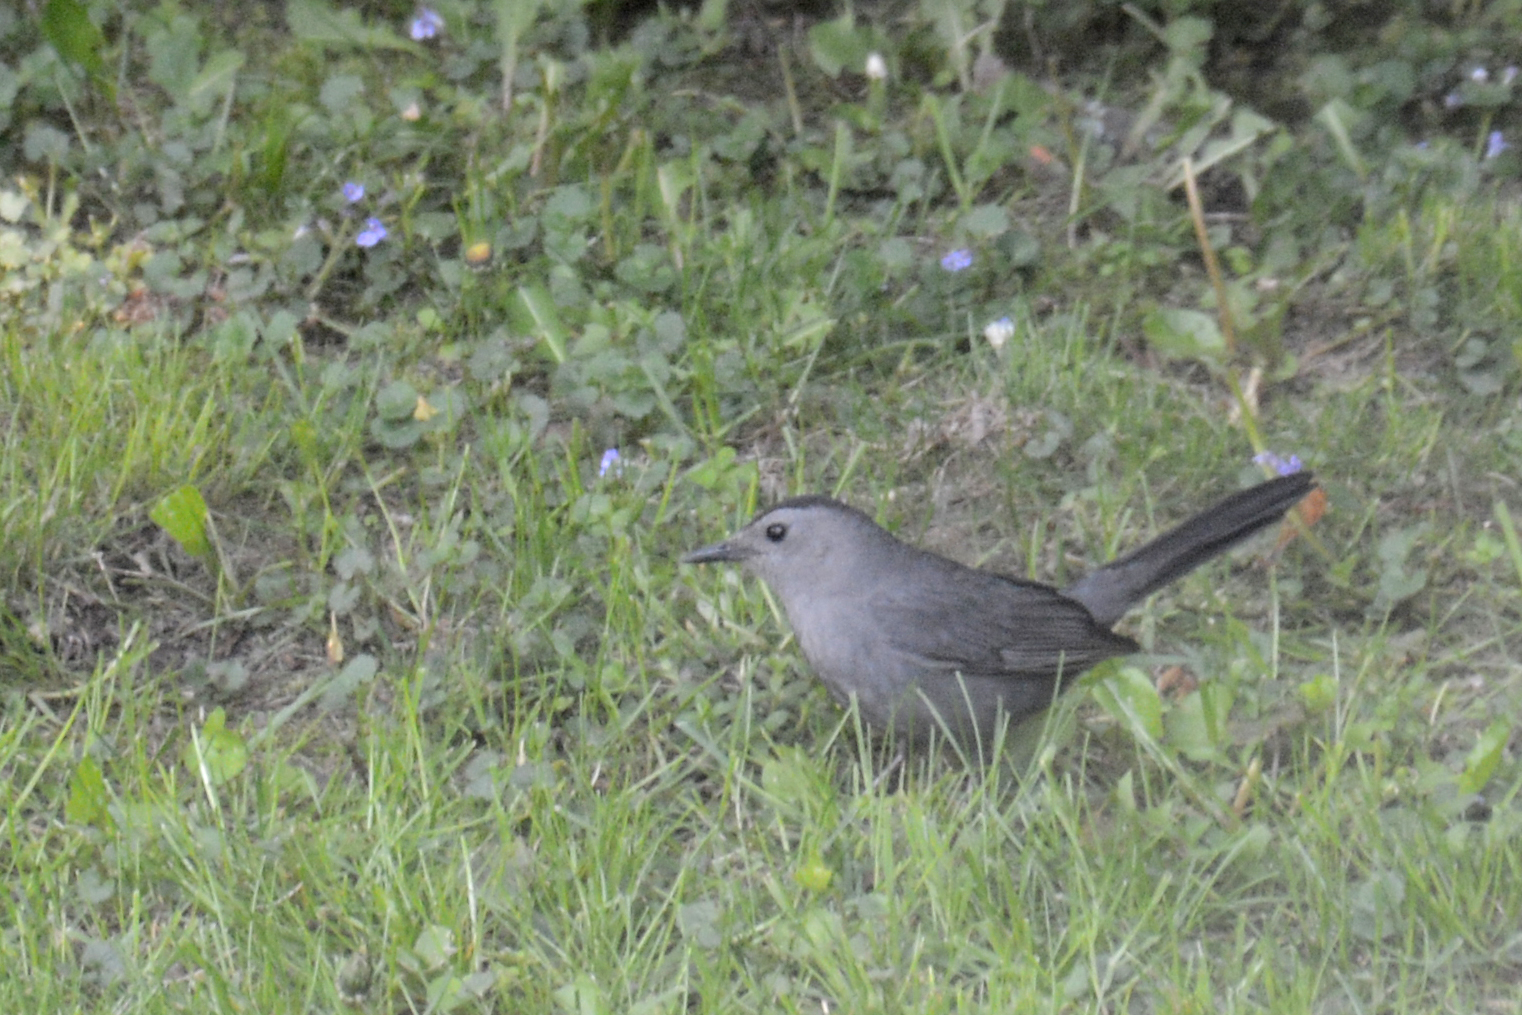 2016-05-16-backyard-birds-graycatbird